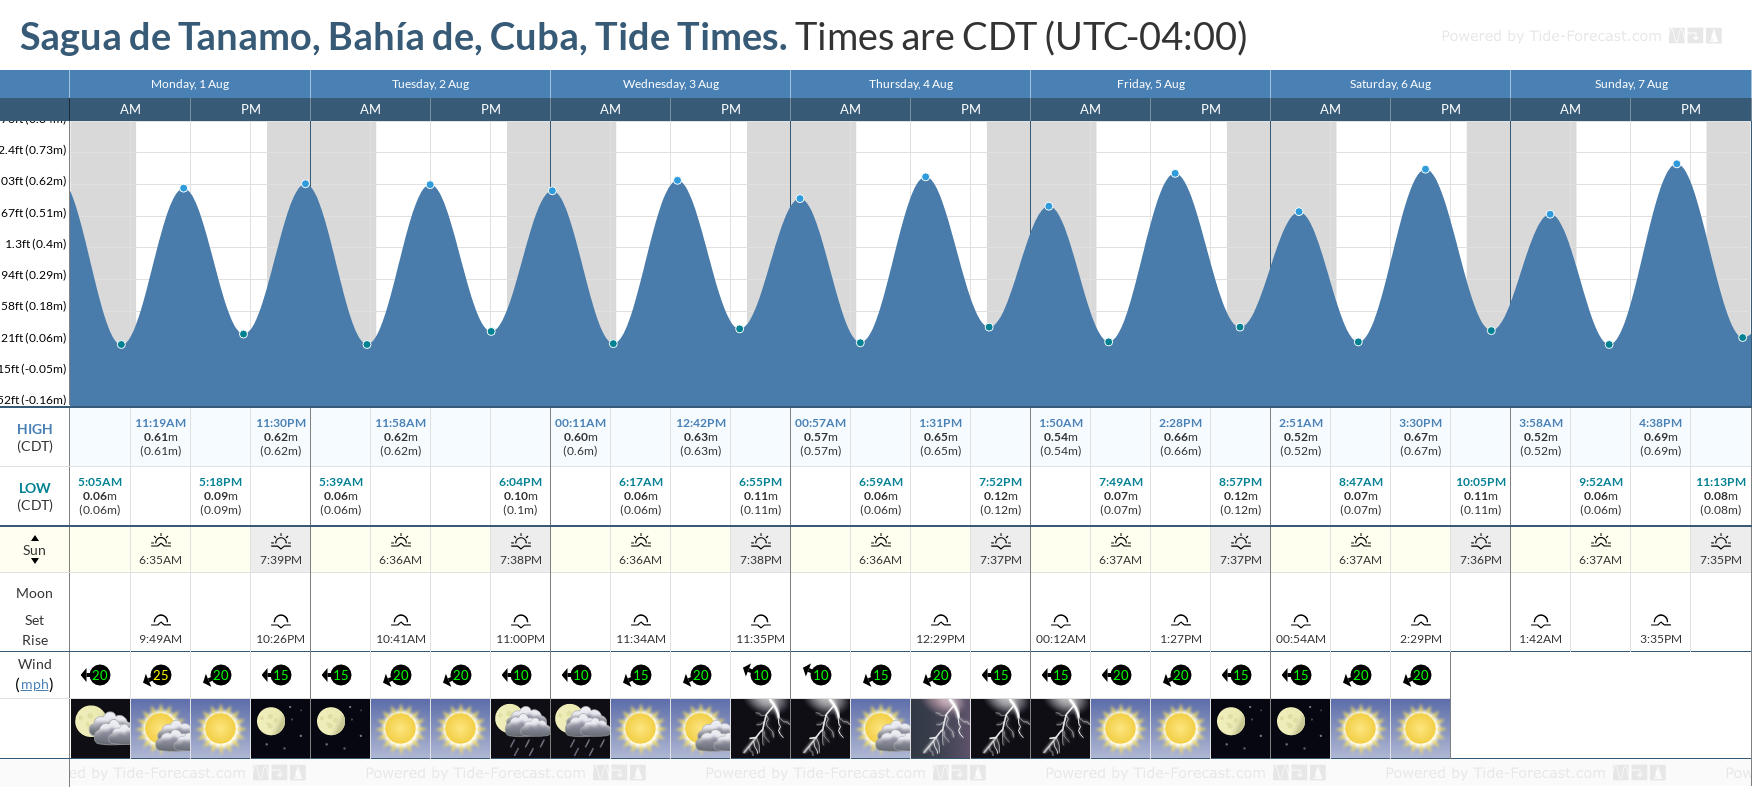 Sagua de Tanamo, Bahía de, Cuba Tide Chart including high and low tide tide times for the next 7 days